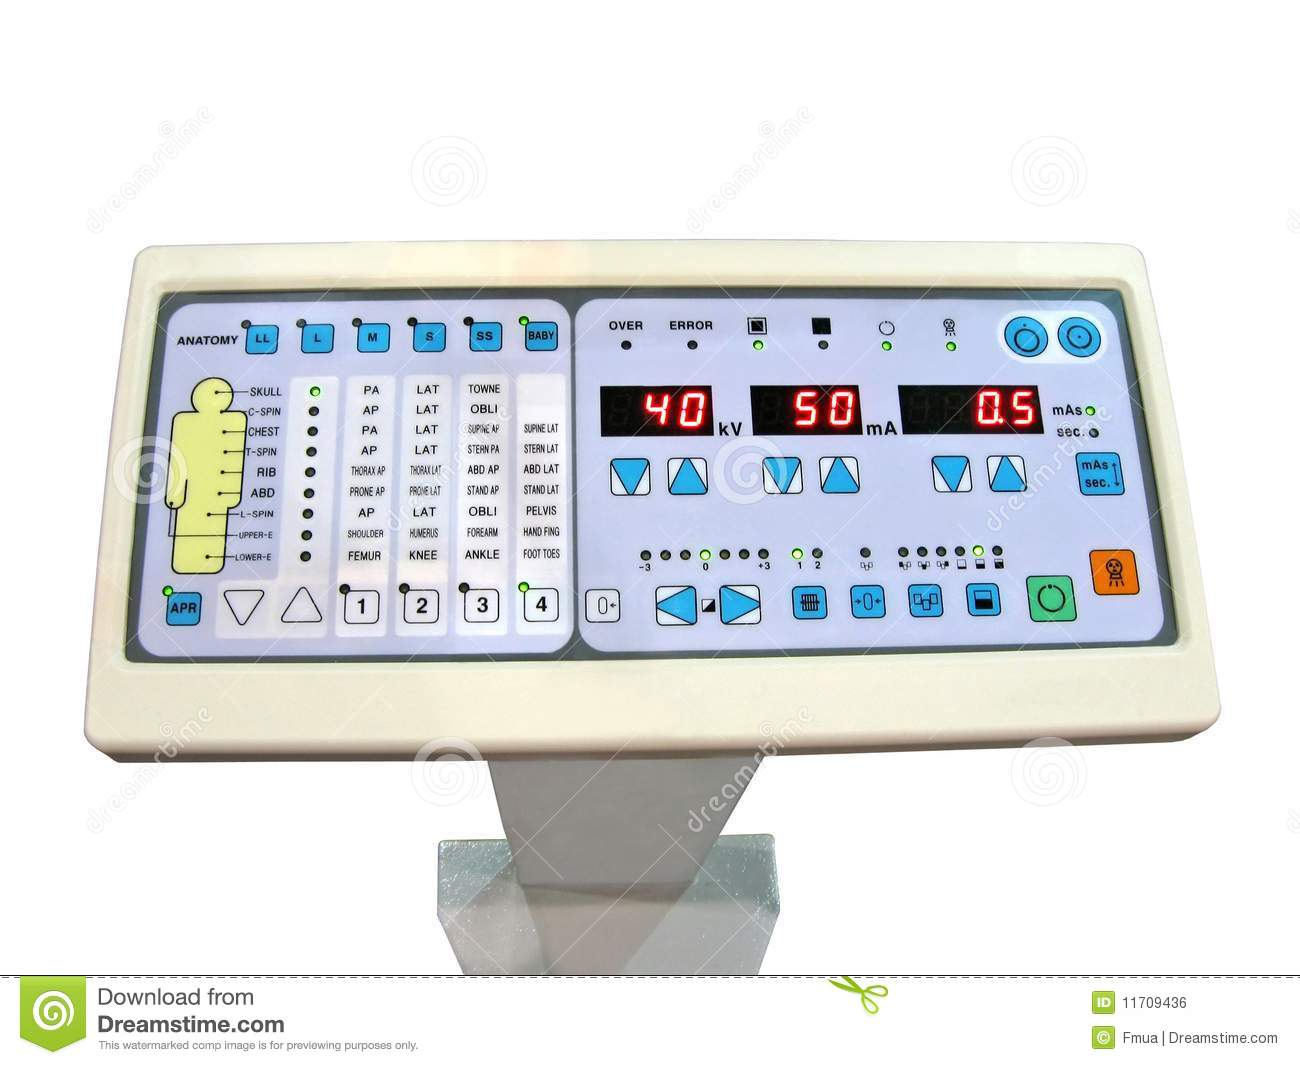 Digital Control Panel : New digital control panel anatomy patient test royalty